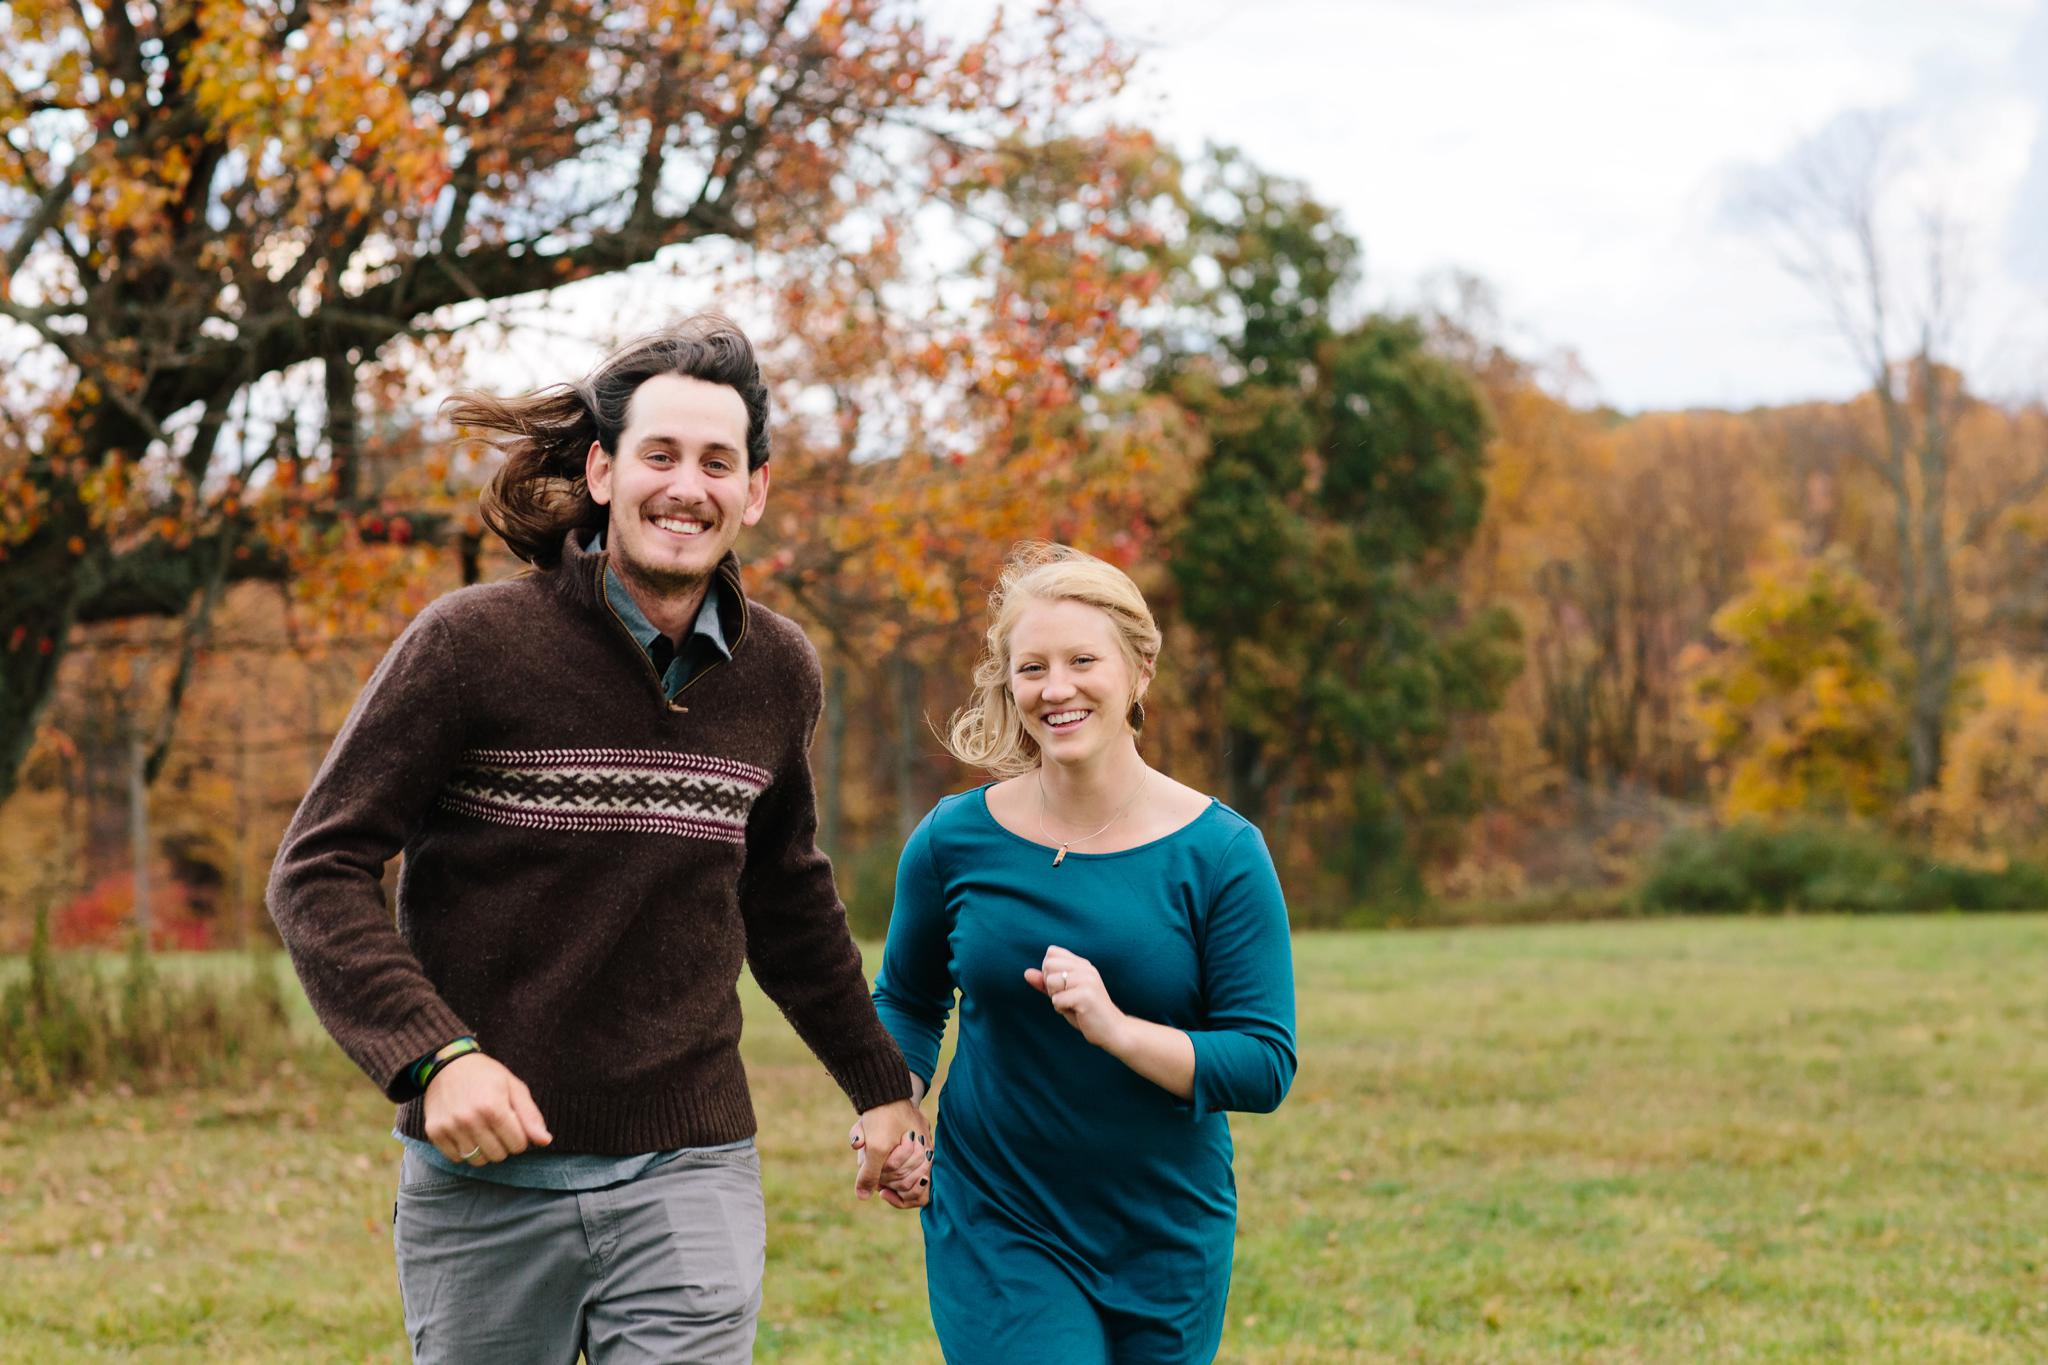 tukhannock_pa_engagement_photographer_8425.jpg